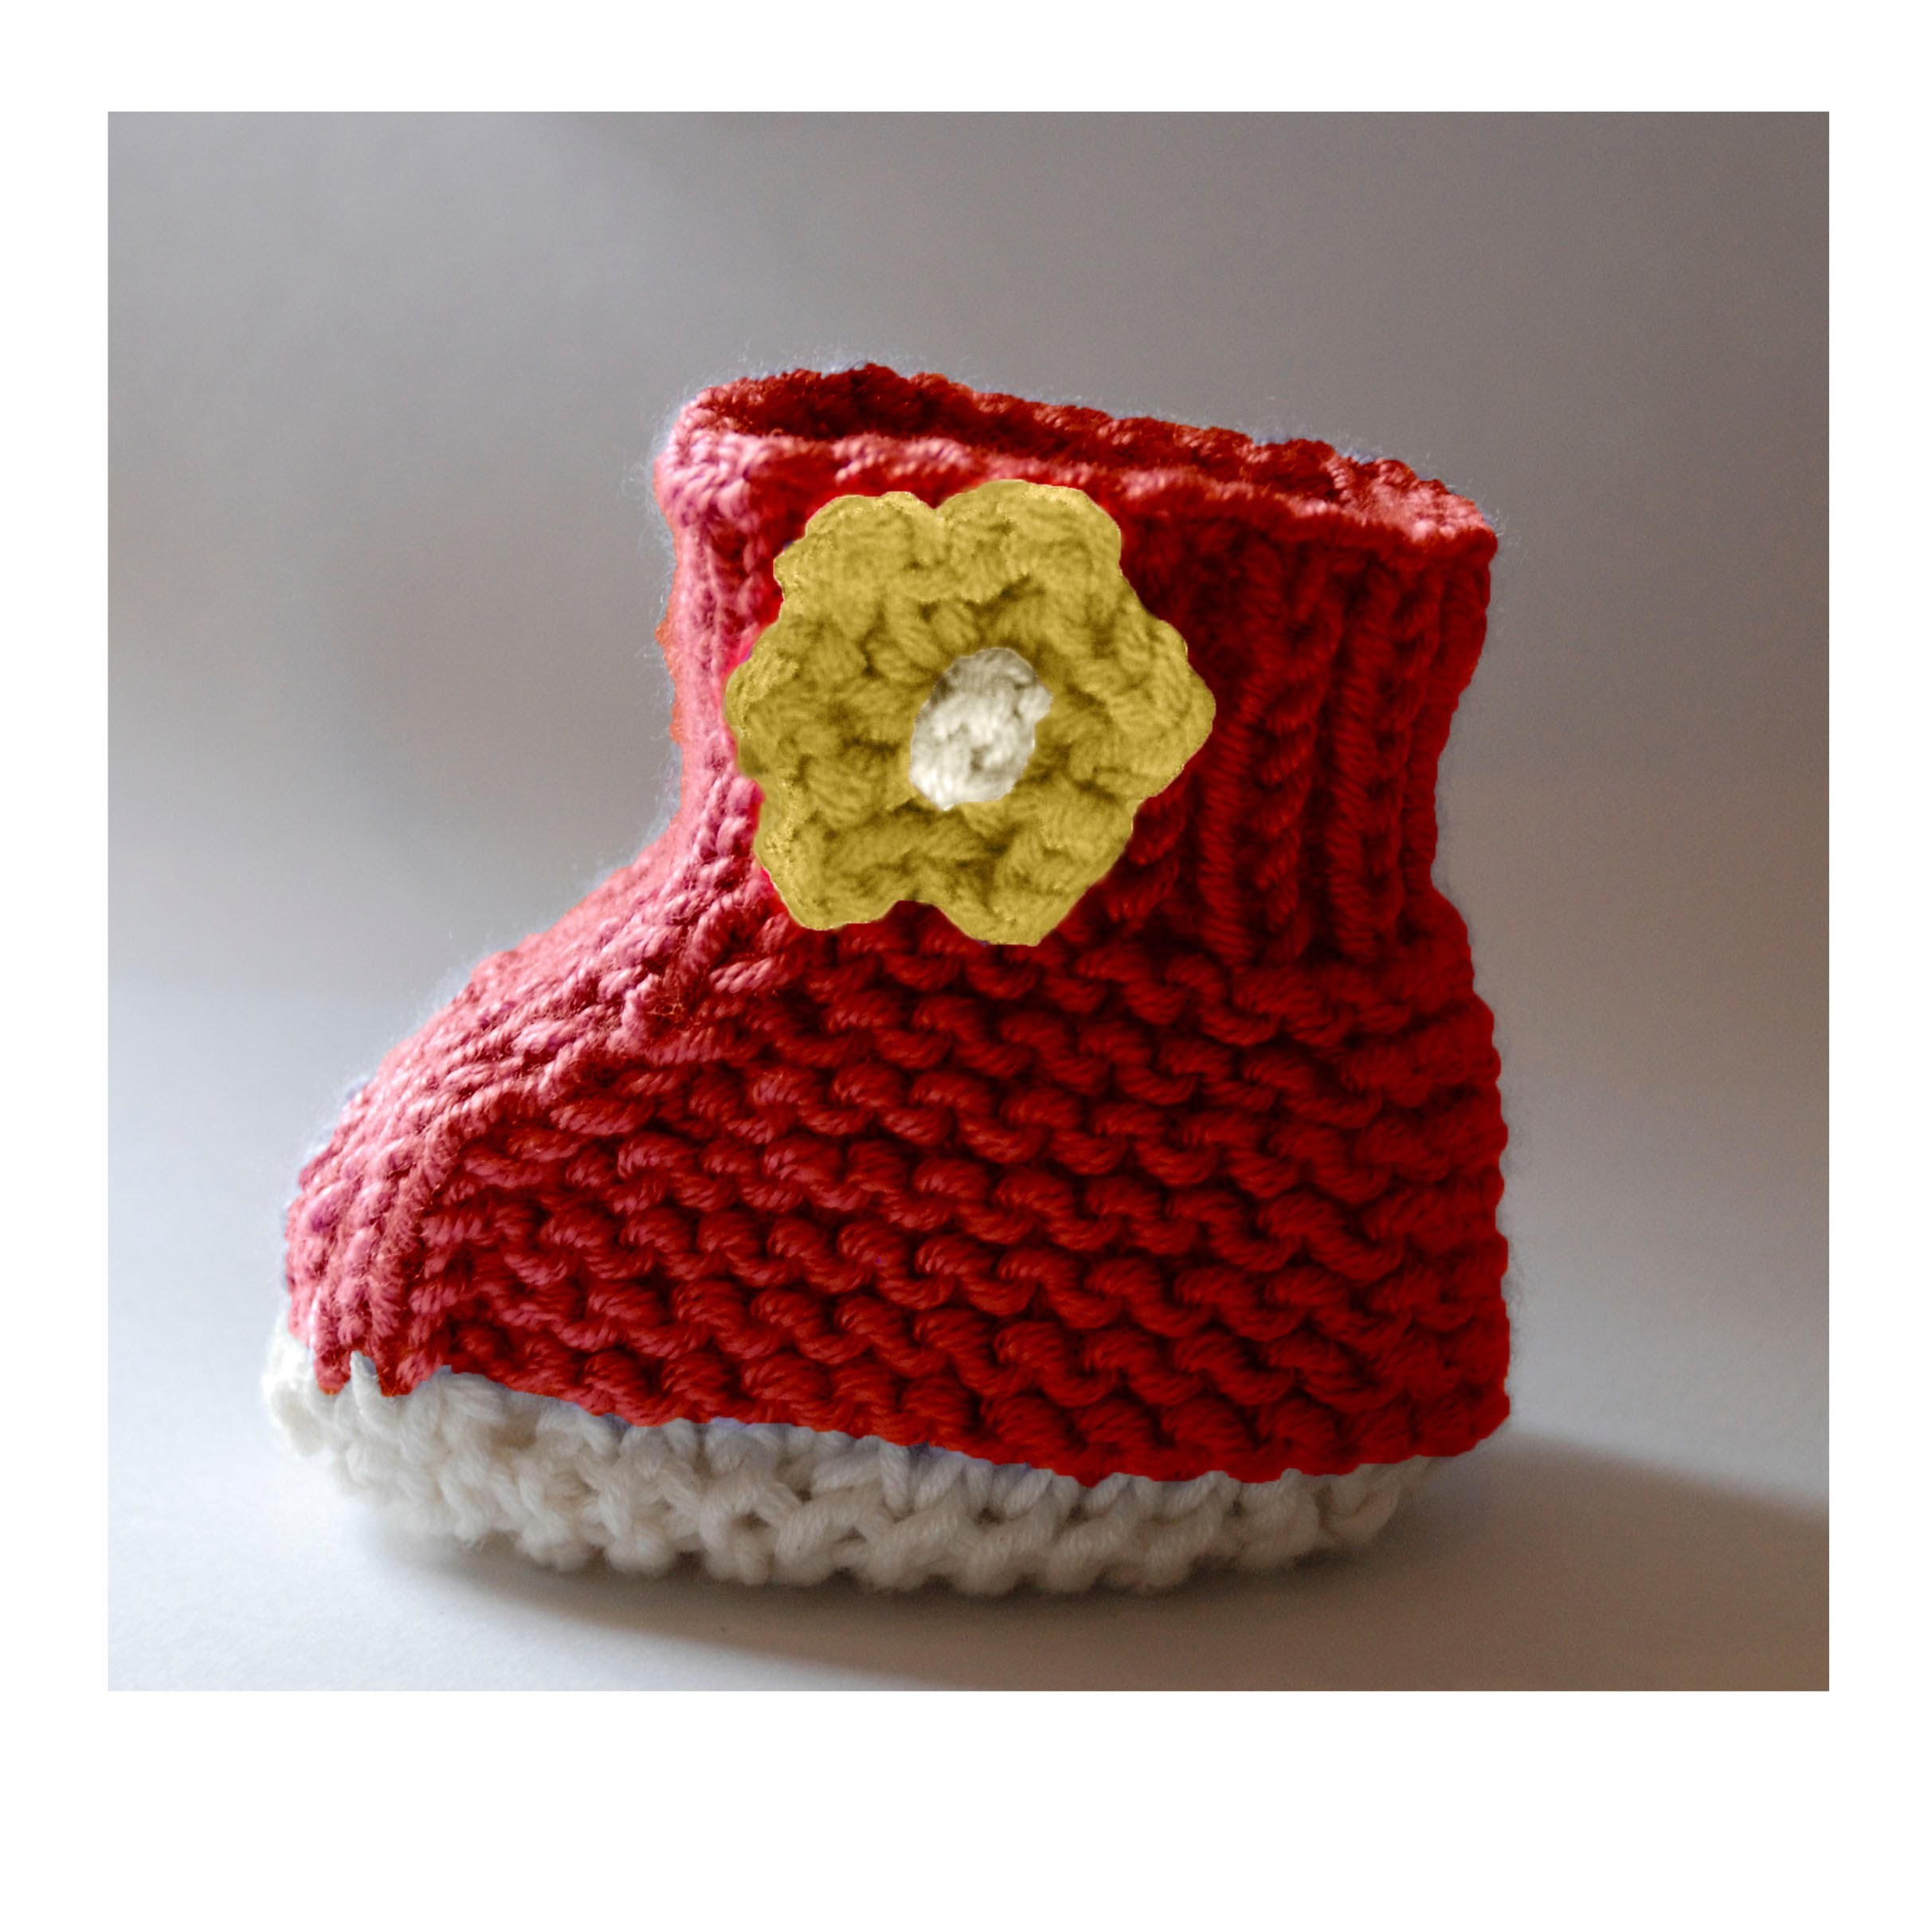 Baby Booties Knitting Pattern With Full Video Guide 0-12 Months